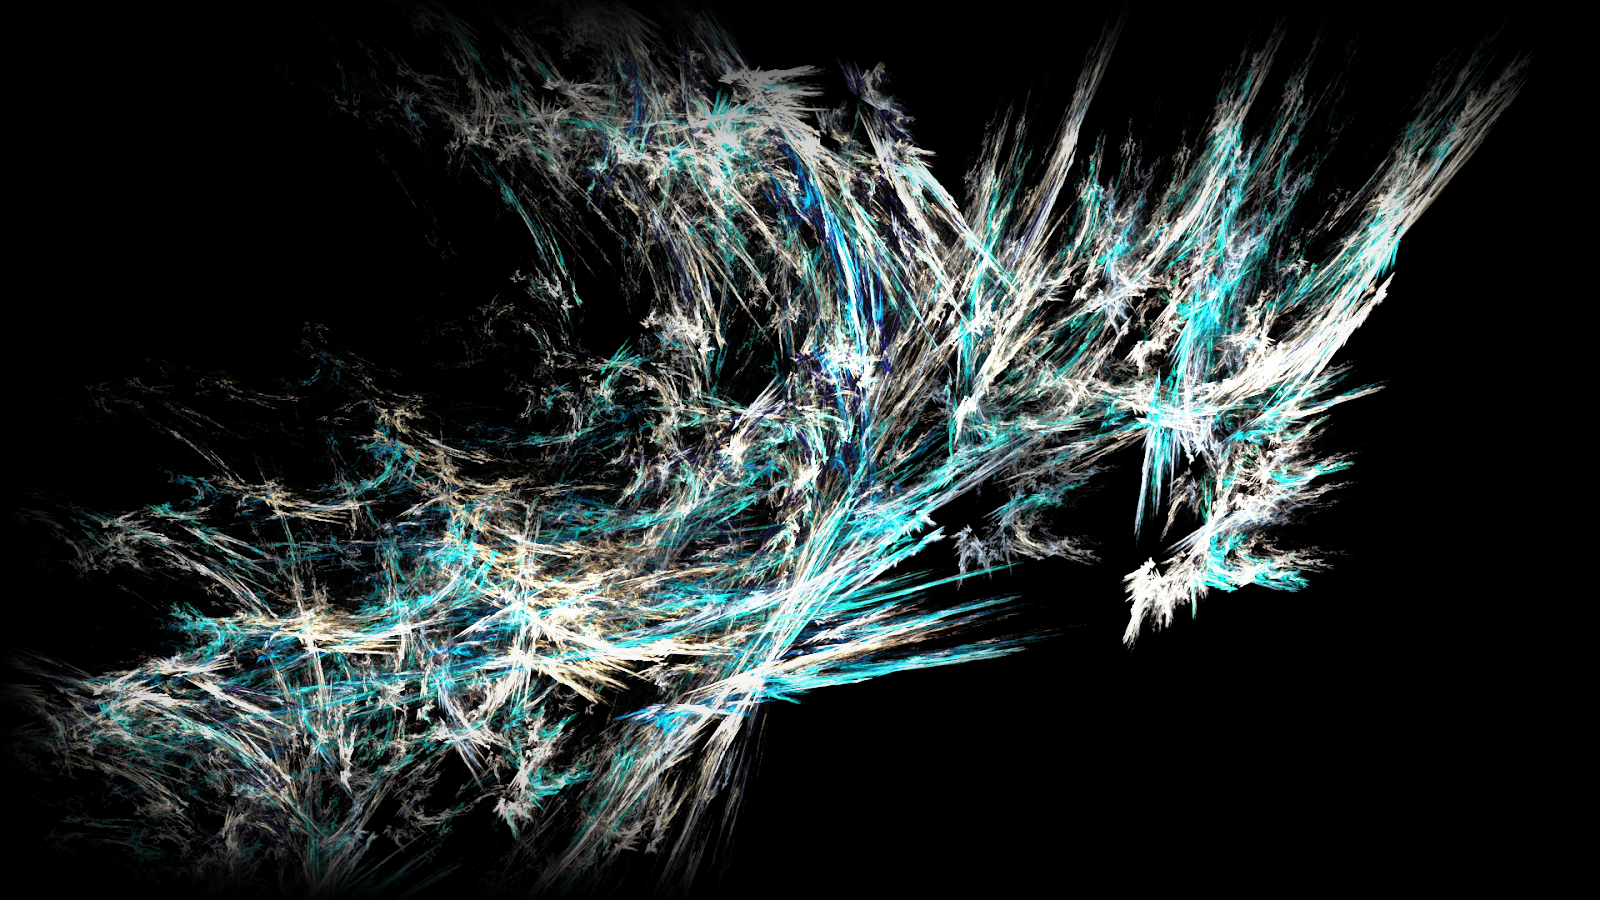 Dark Cool Ice Dragon Cool Wallpaper Cool Dragons Cool Backrounds